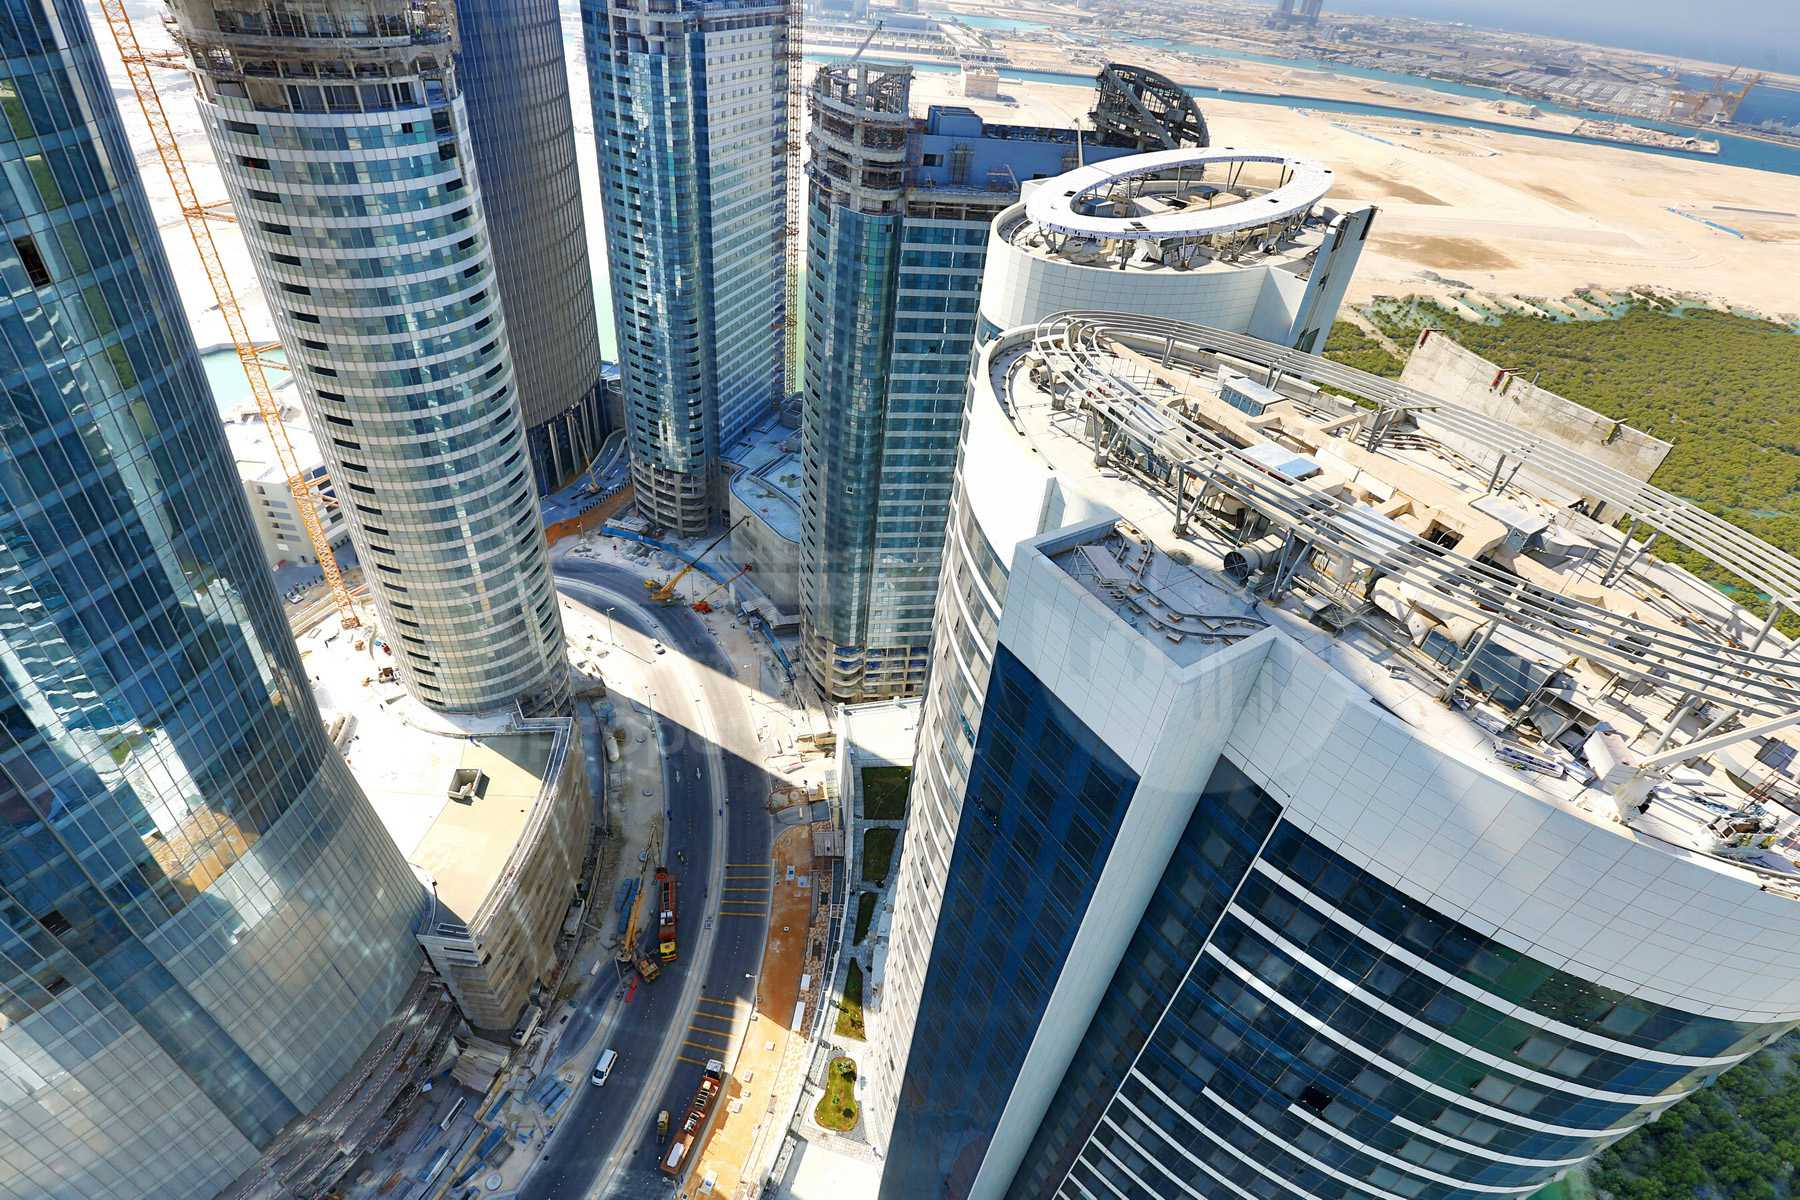 Studio - 1BR - 2BR - 3BR - 4BR Apartment - Abu Dhabi - UAE - Al Reem Island - Hydra Avenue - Outside View (39).jpg